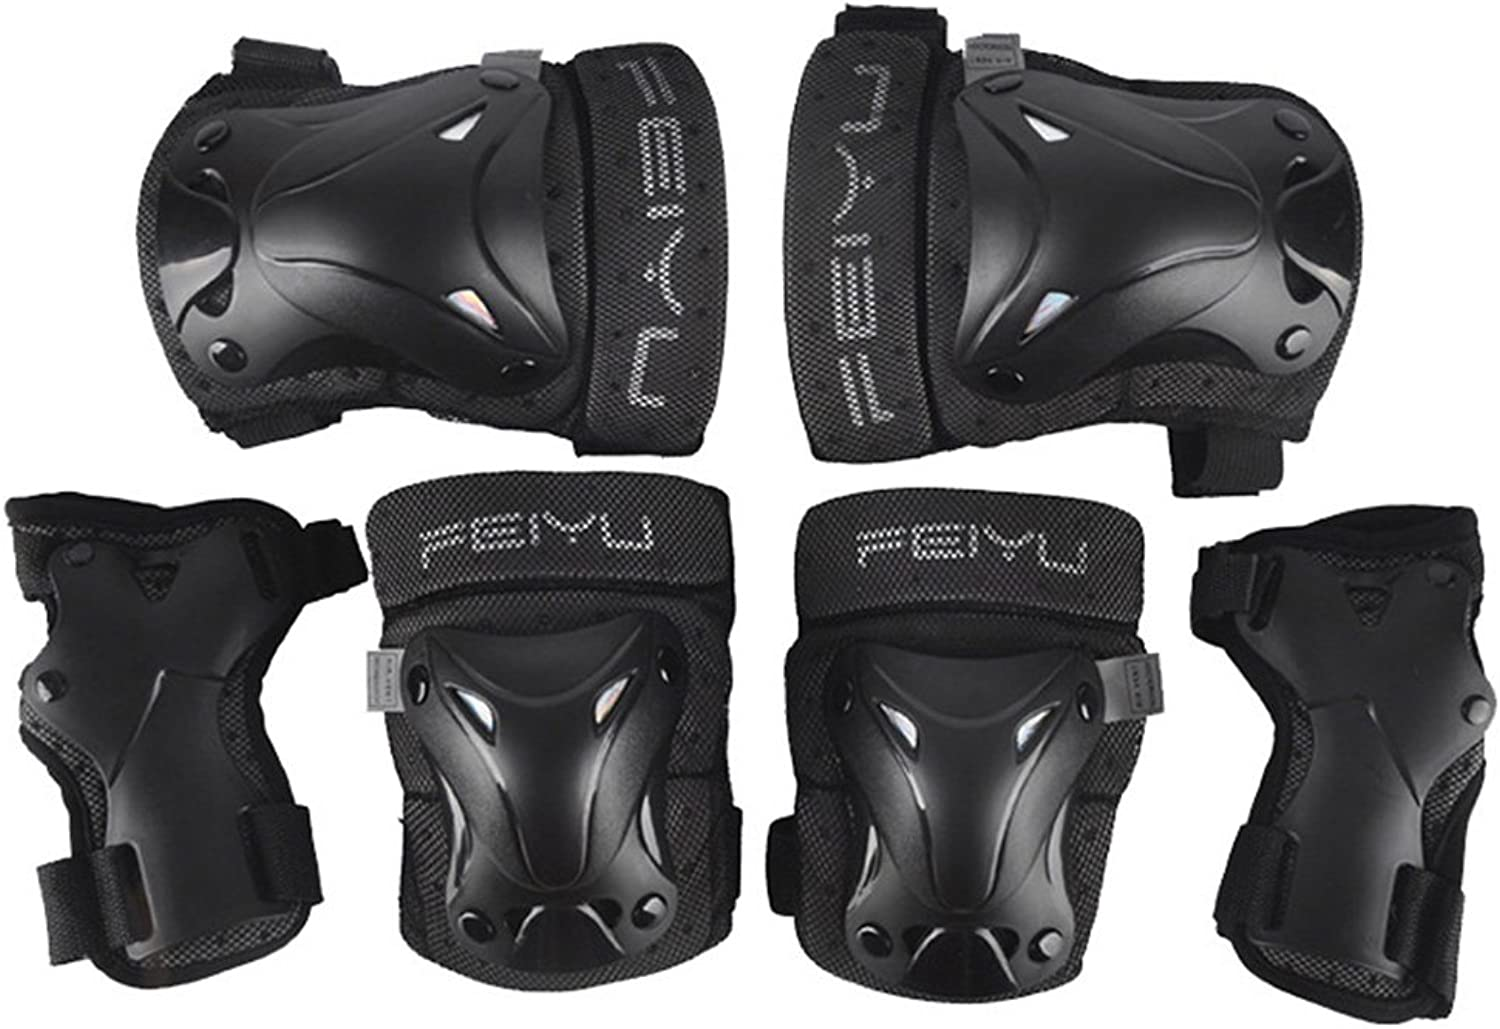 GUSTAVE Pack of 6 Bike Knee Pads and Elbow Pads with Wrist Guards Predective Gear Set for Adult or Kids Biking, Riding, Cycling and Multi Sports Gear